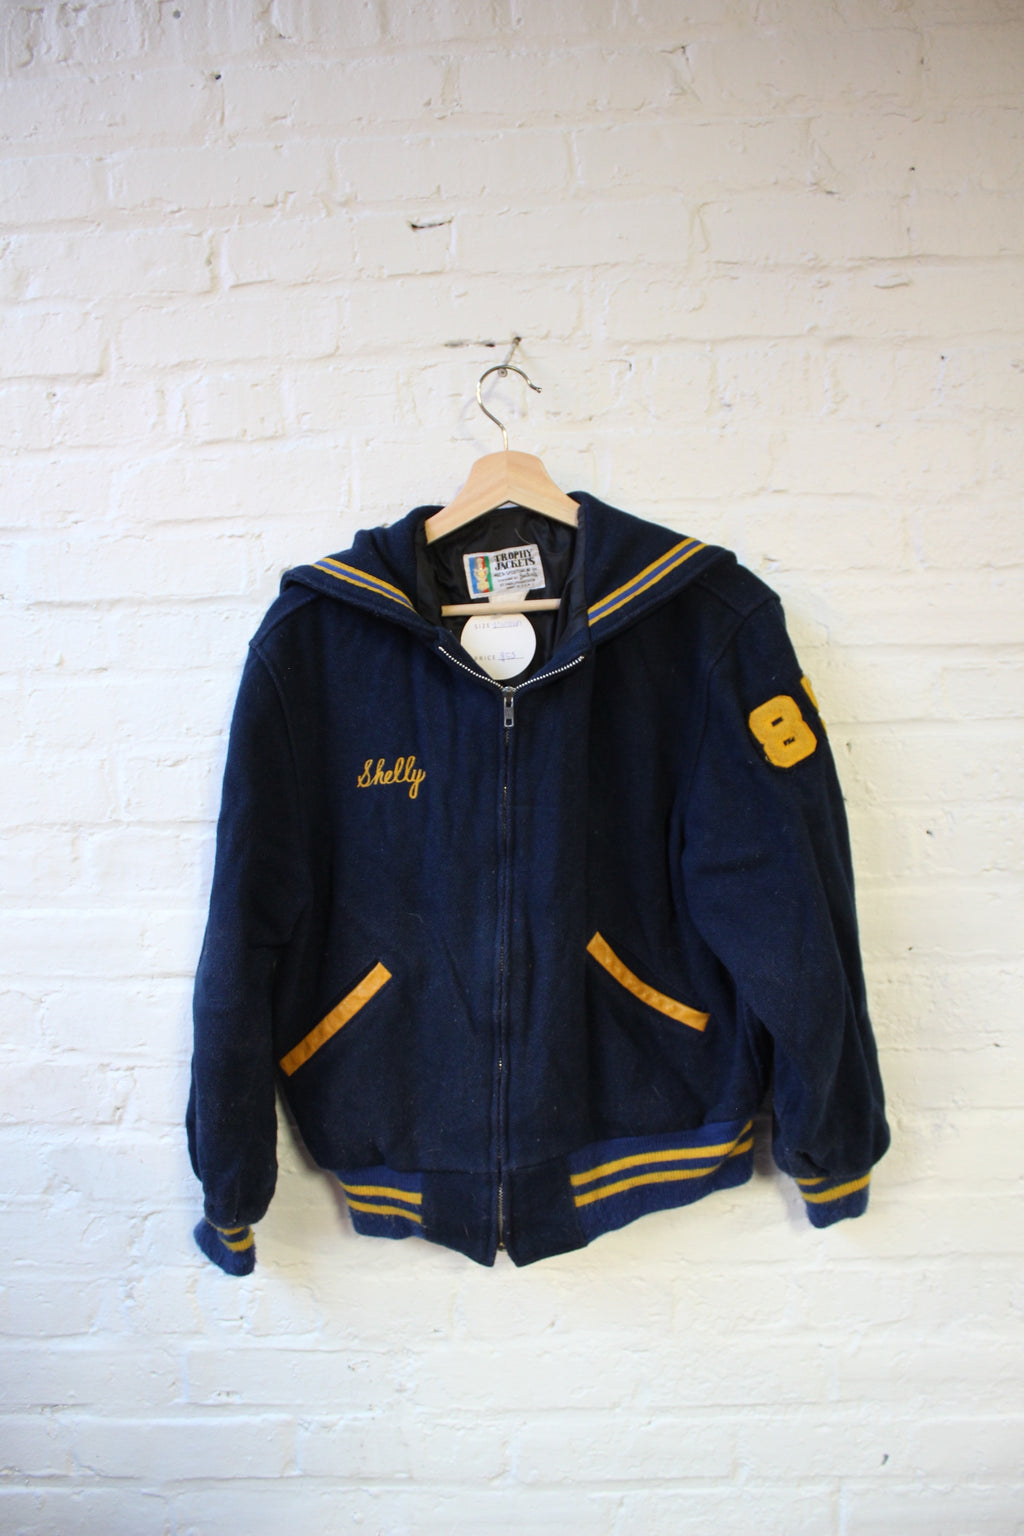 Wayzata Shelly 85 Letterman Jacket